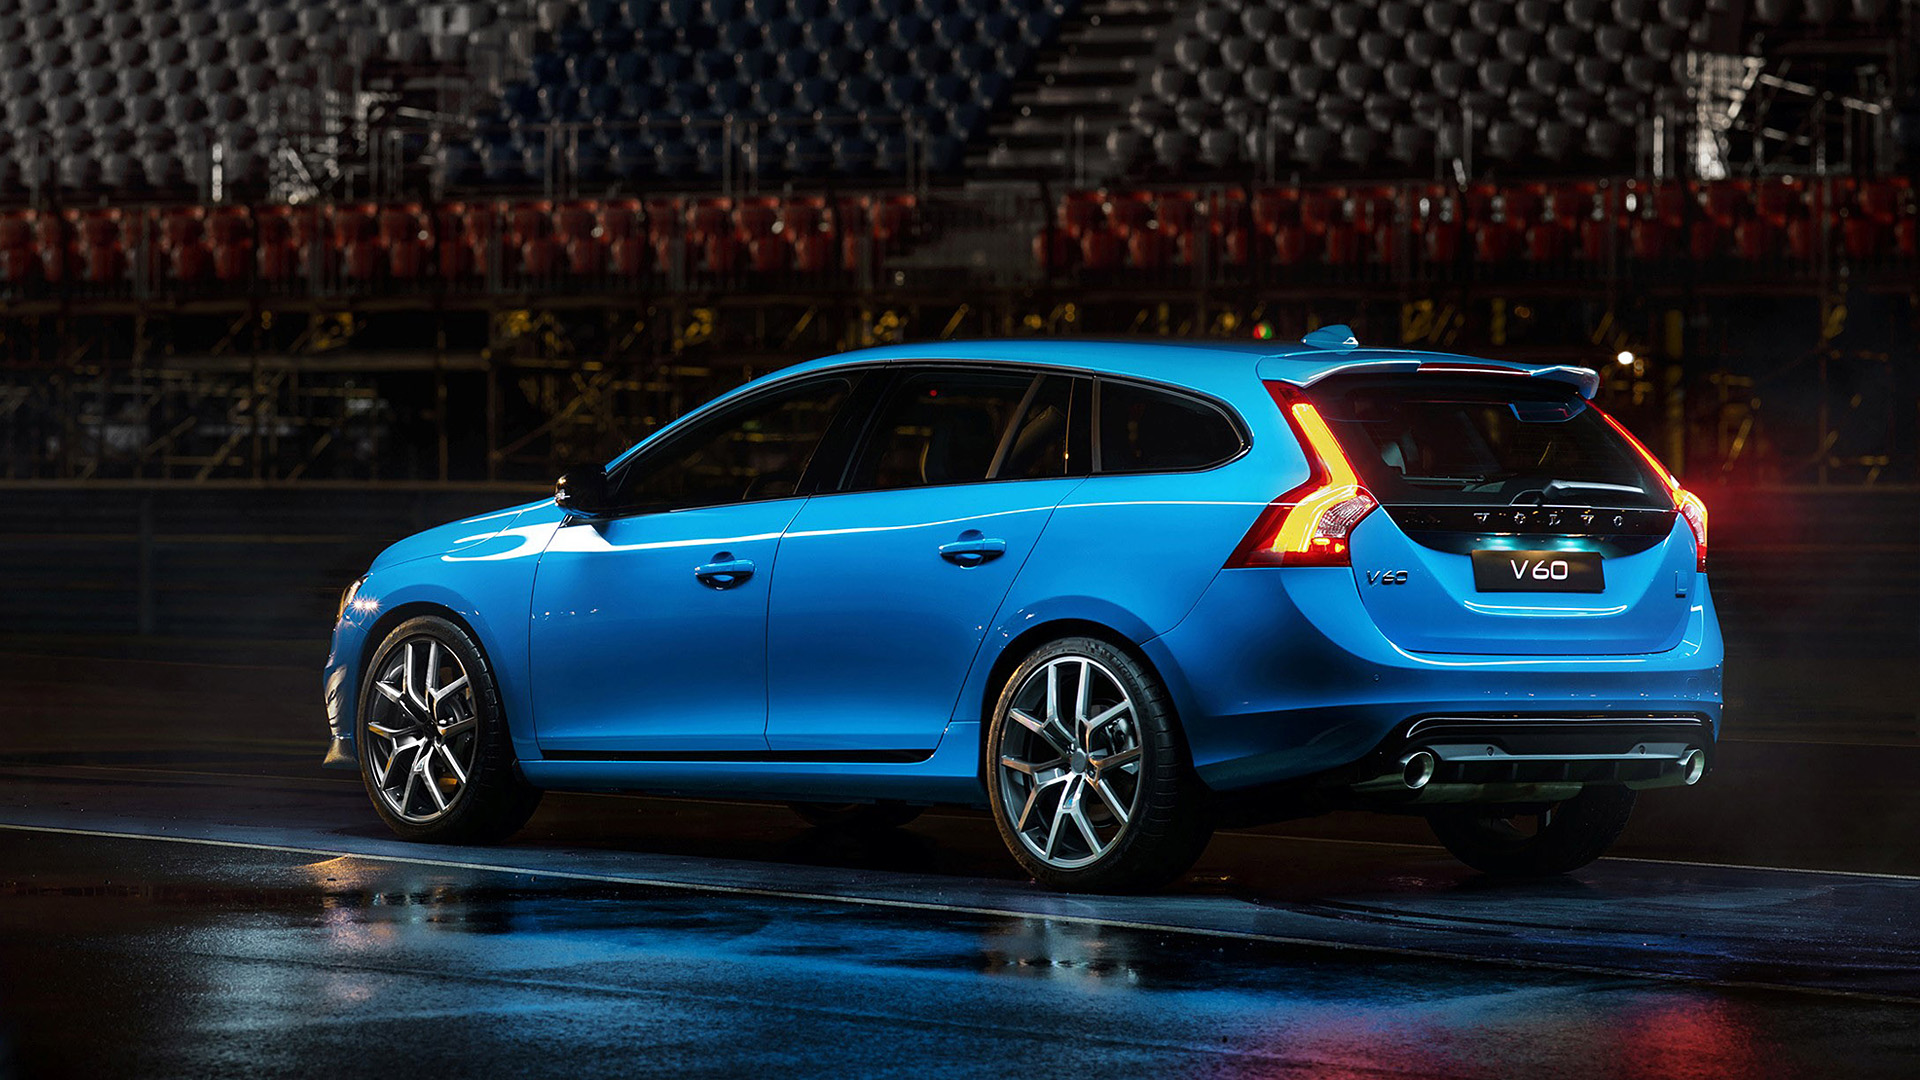 Volvo V60 Wallpapers